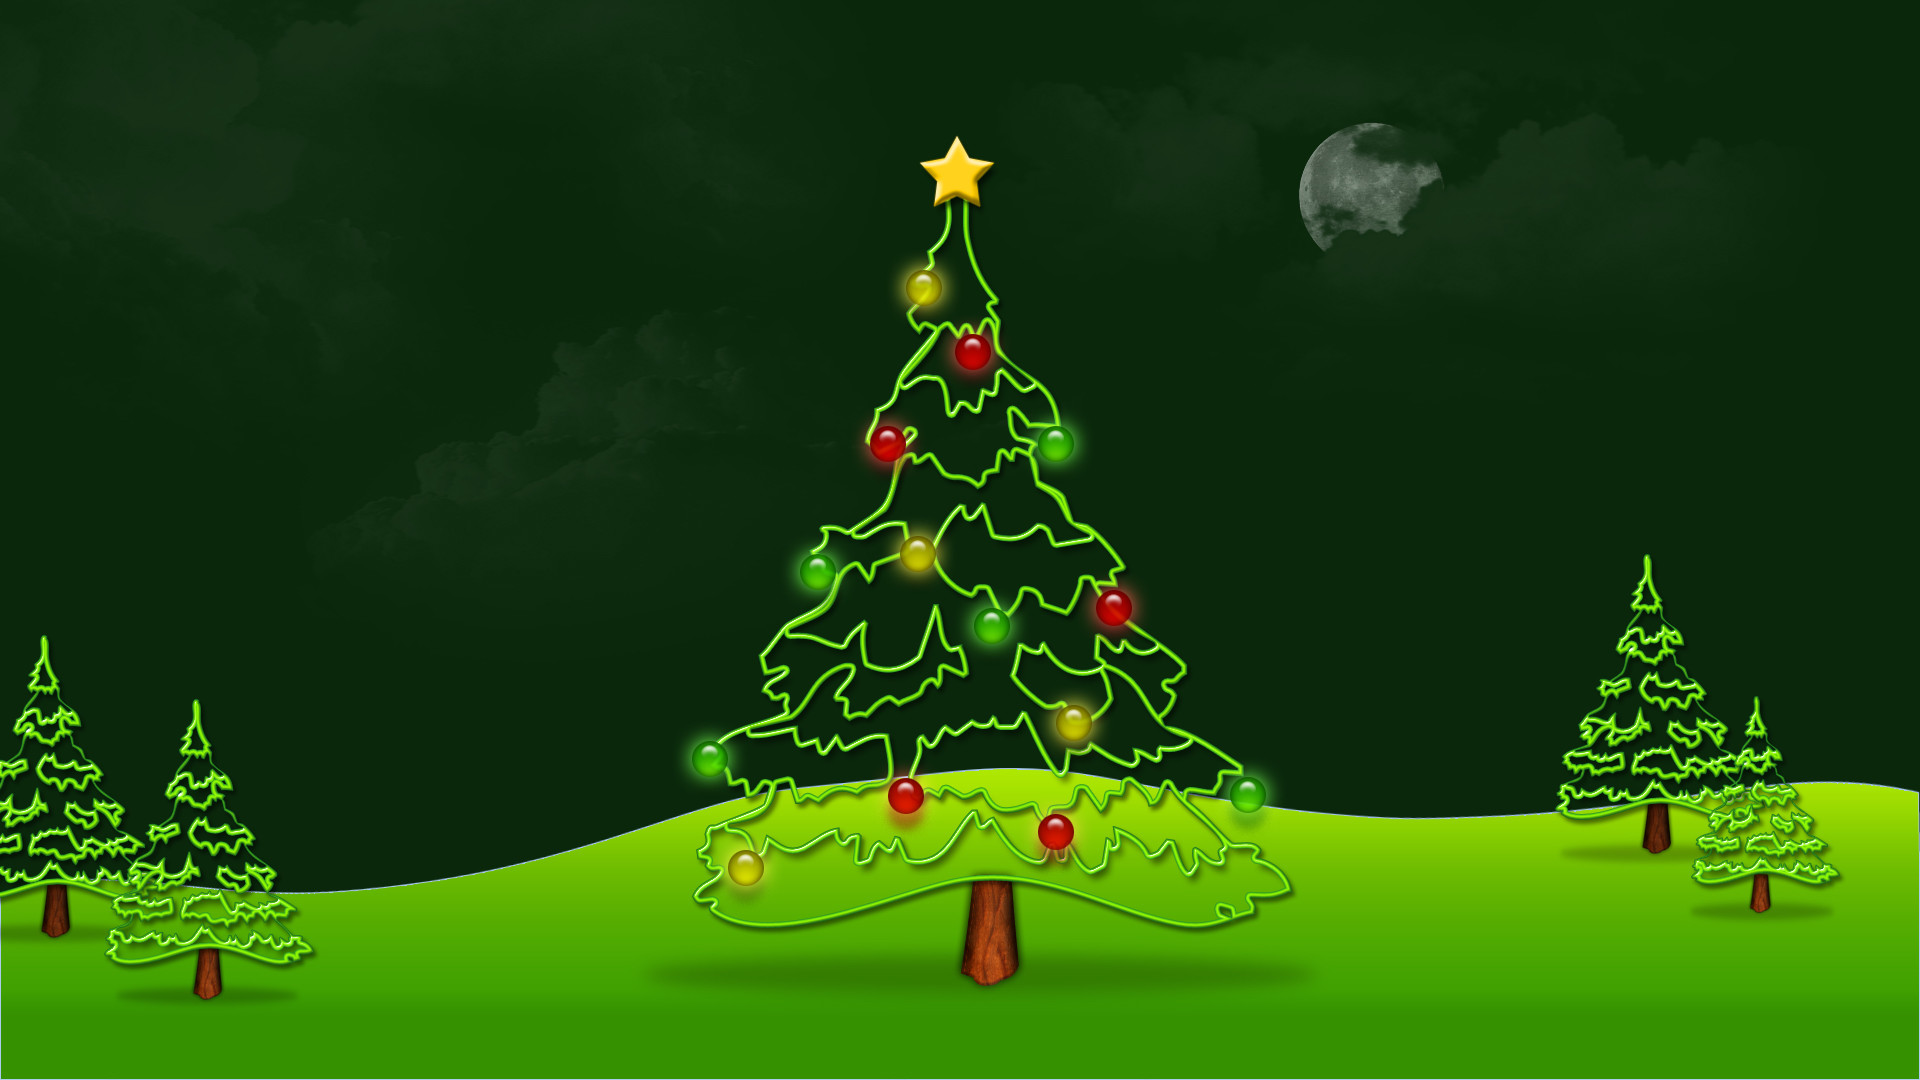 christmas wallpapers animated christmas tree background 1920x1080 download hd wallpaper wallpapertip animated christmas tree background